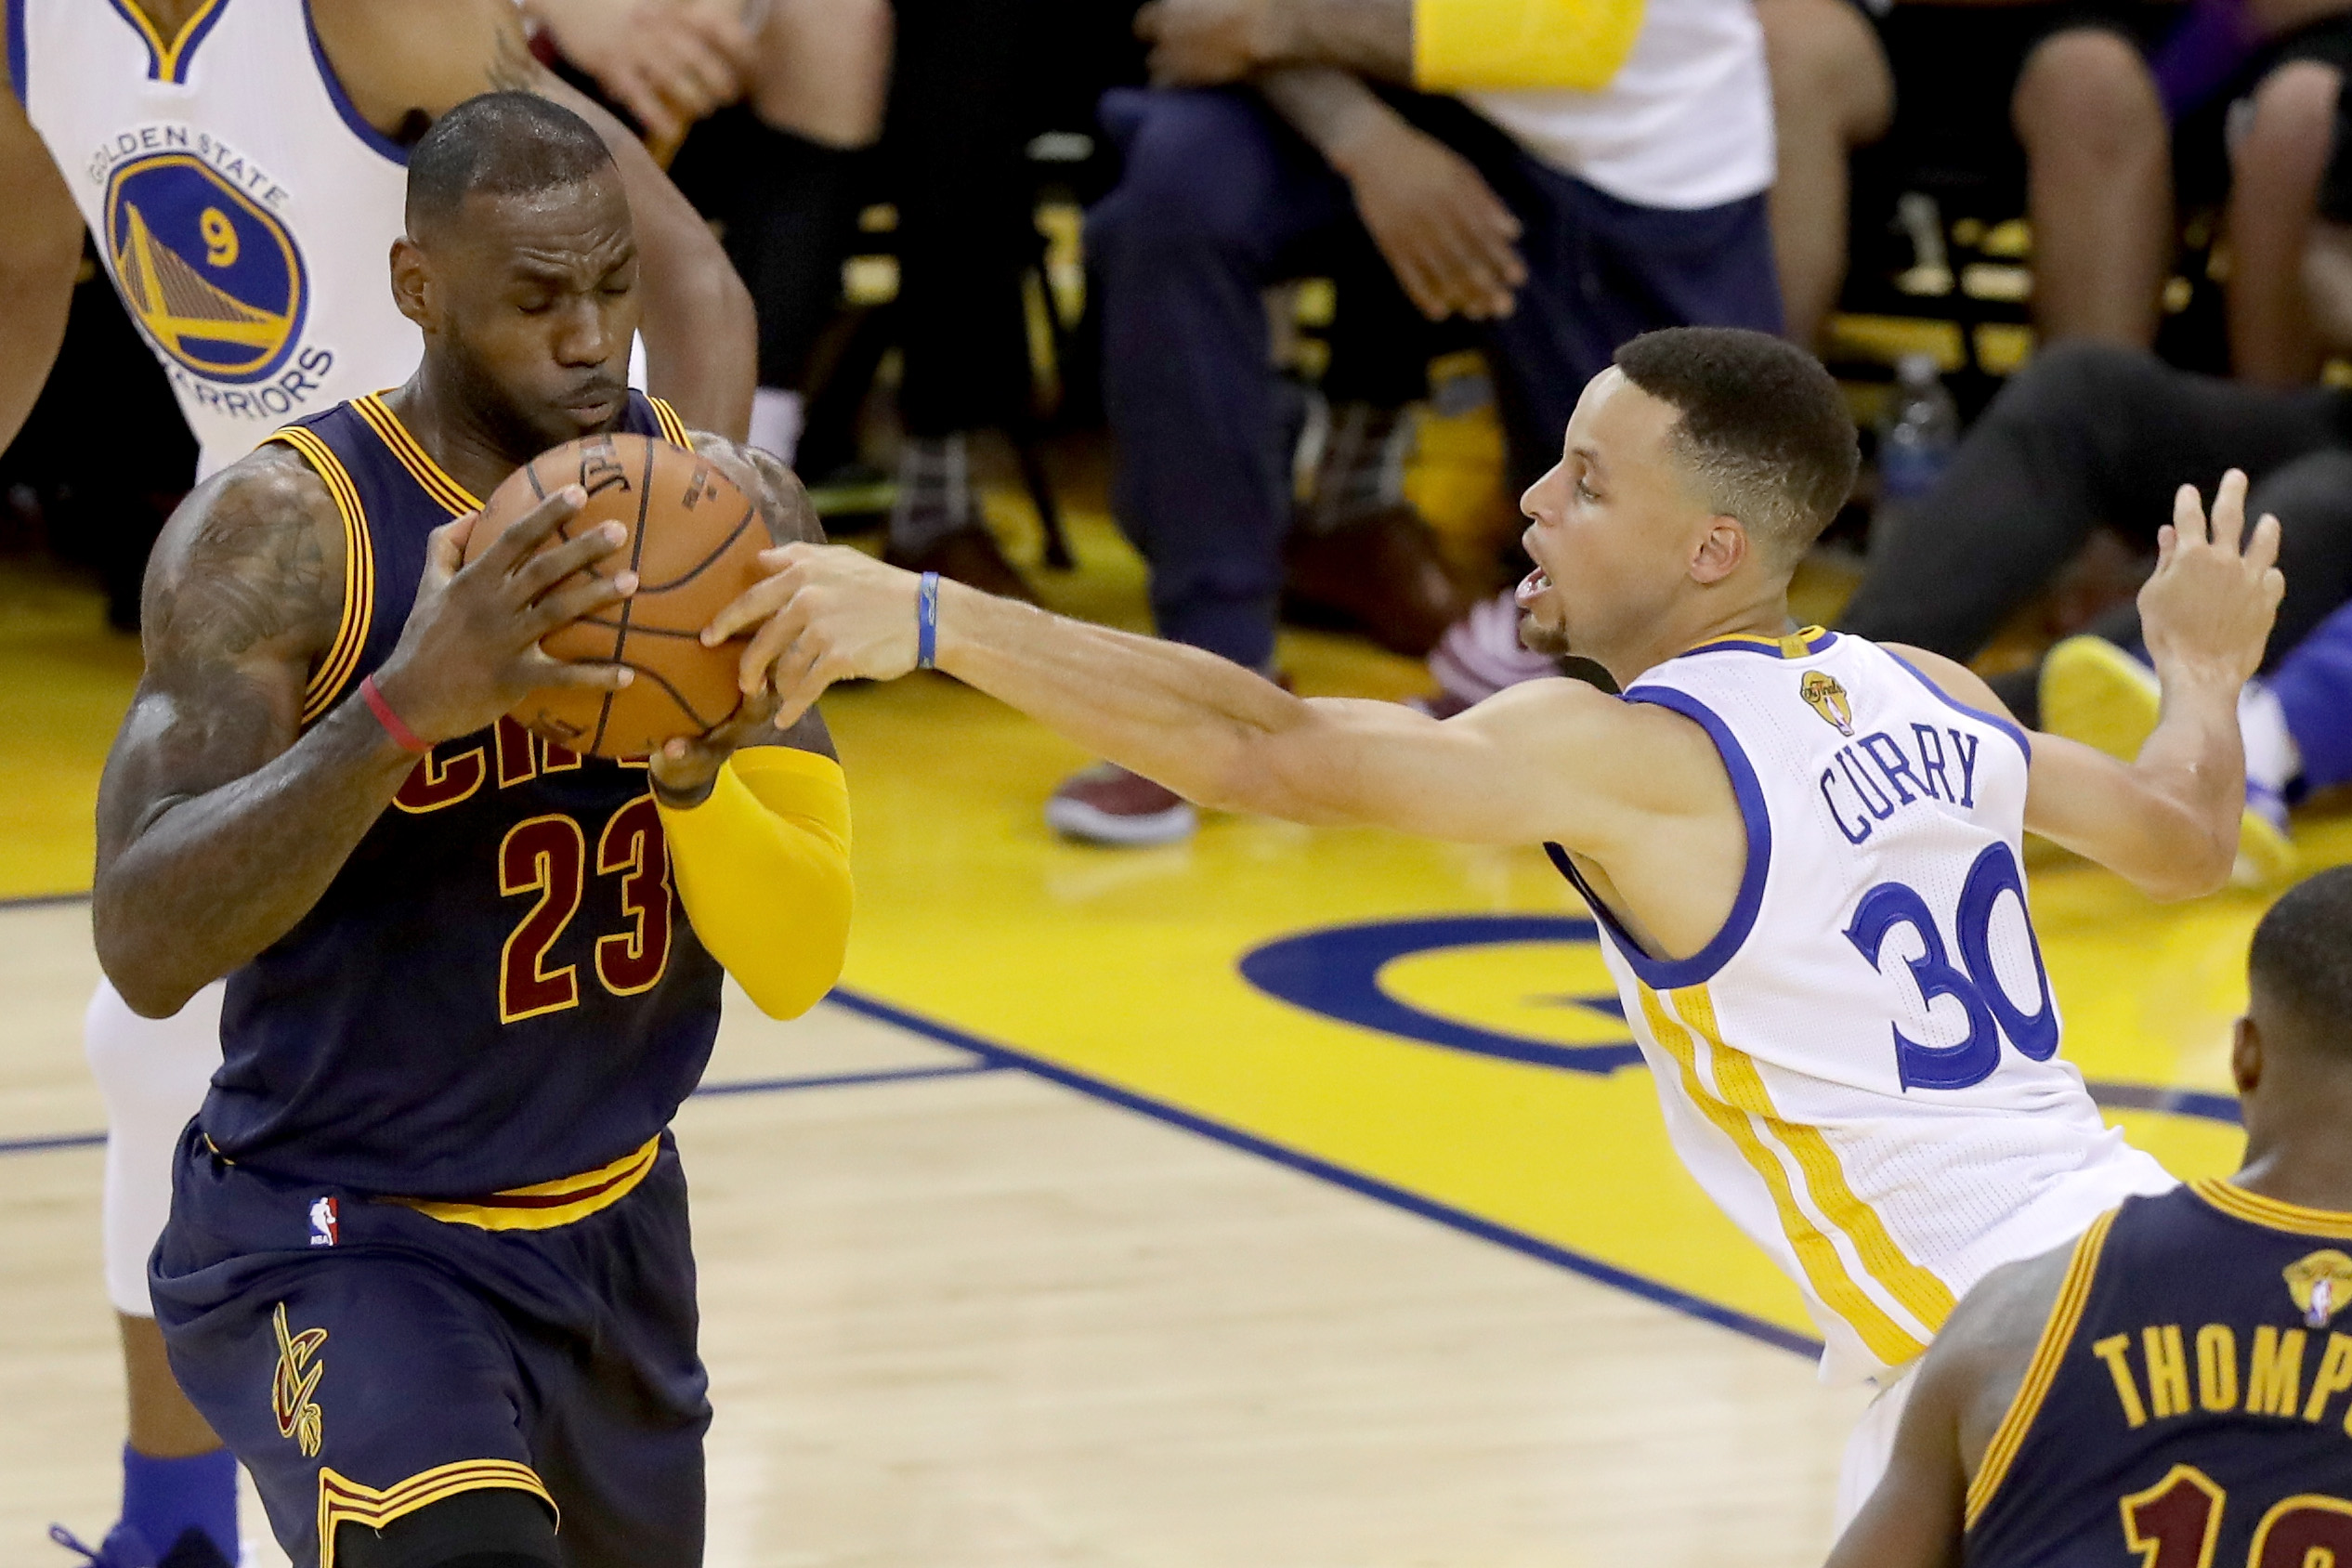 OAKLAND, CA - JUNE 02:  LeBron James #23 of the Cleveland Cavaliers with the ball against Stephen Curry #30 of the Golden State Warriors in the first half in Game 1 of the 2016 NBA Finals at ORACLE Arena on June 2, 2016 in Oakland, California. (Photo by R